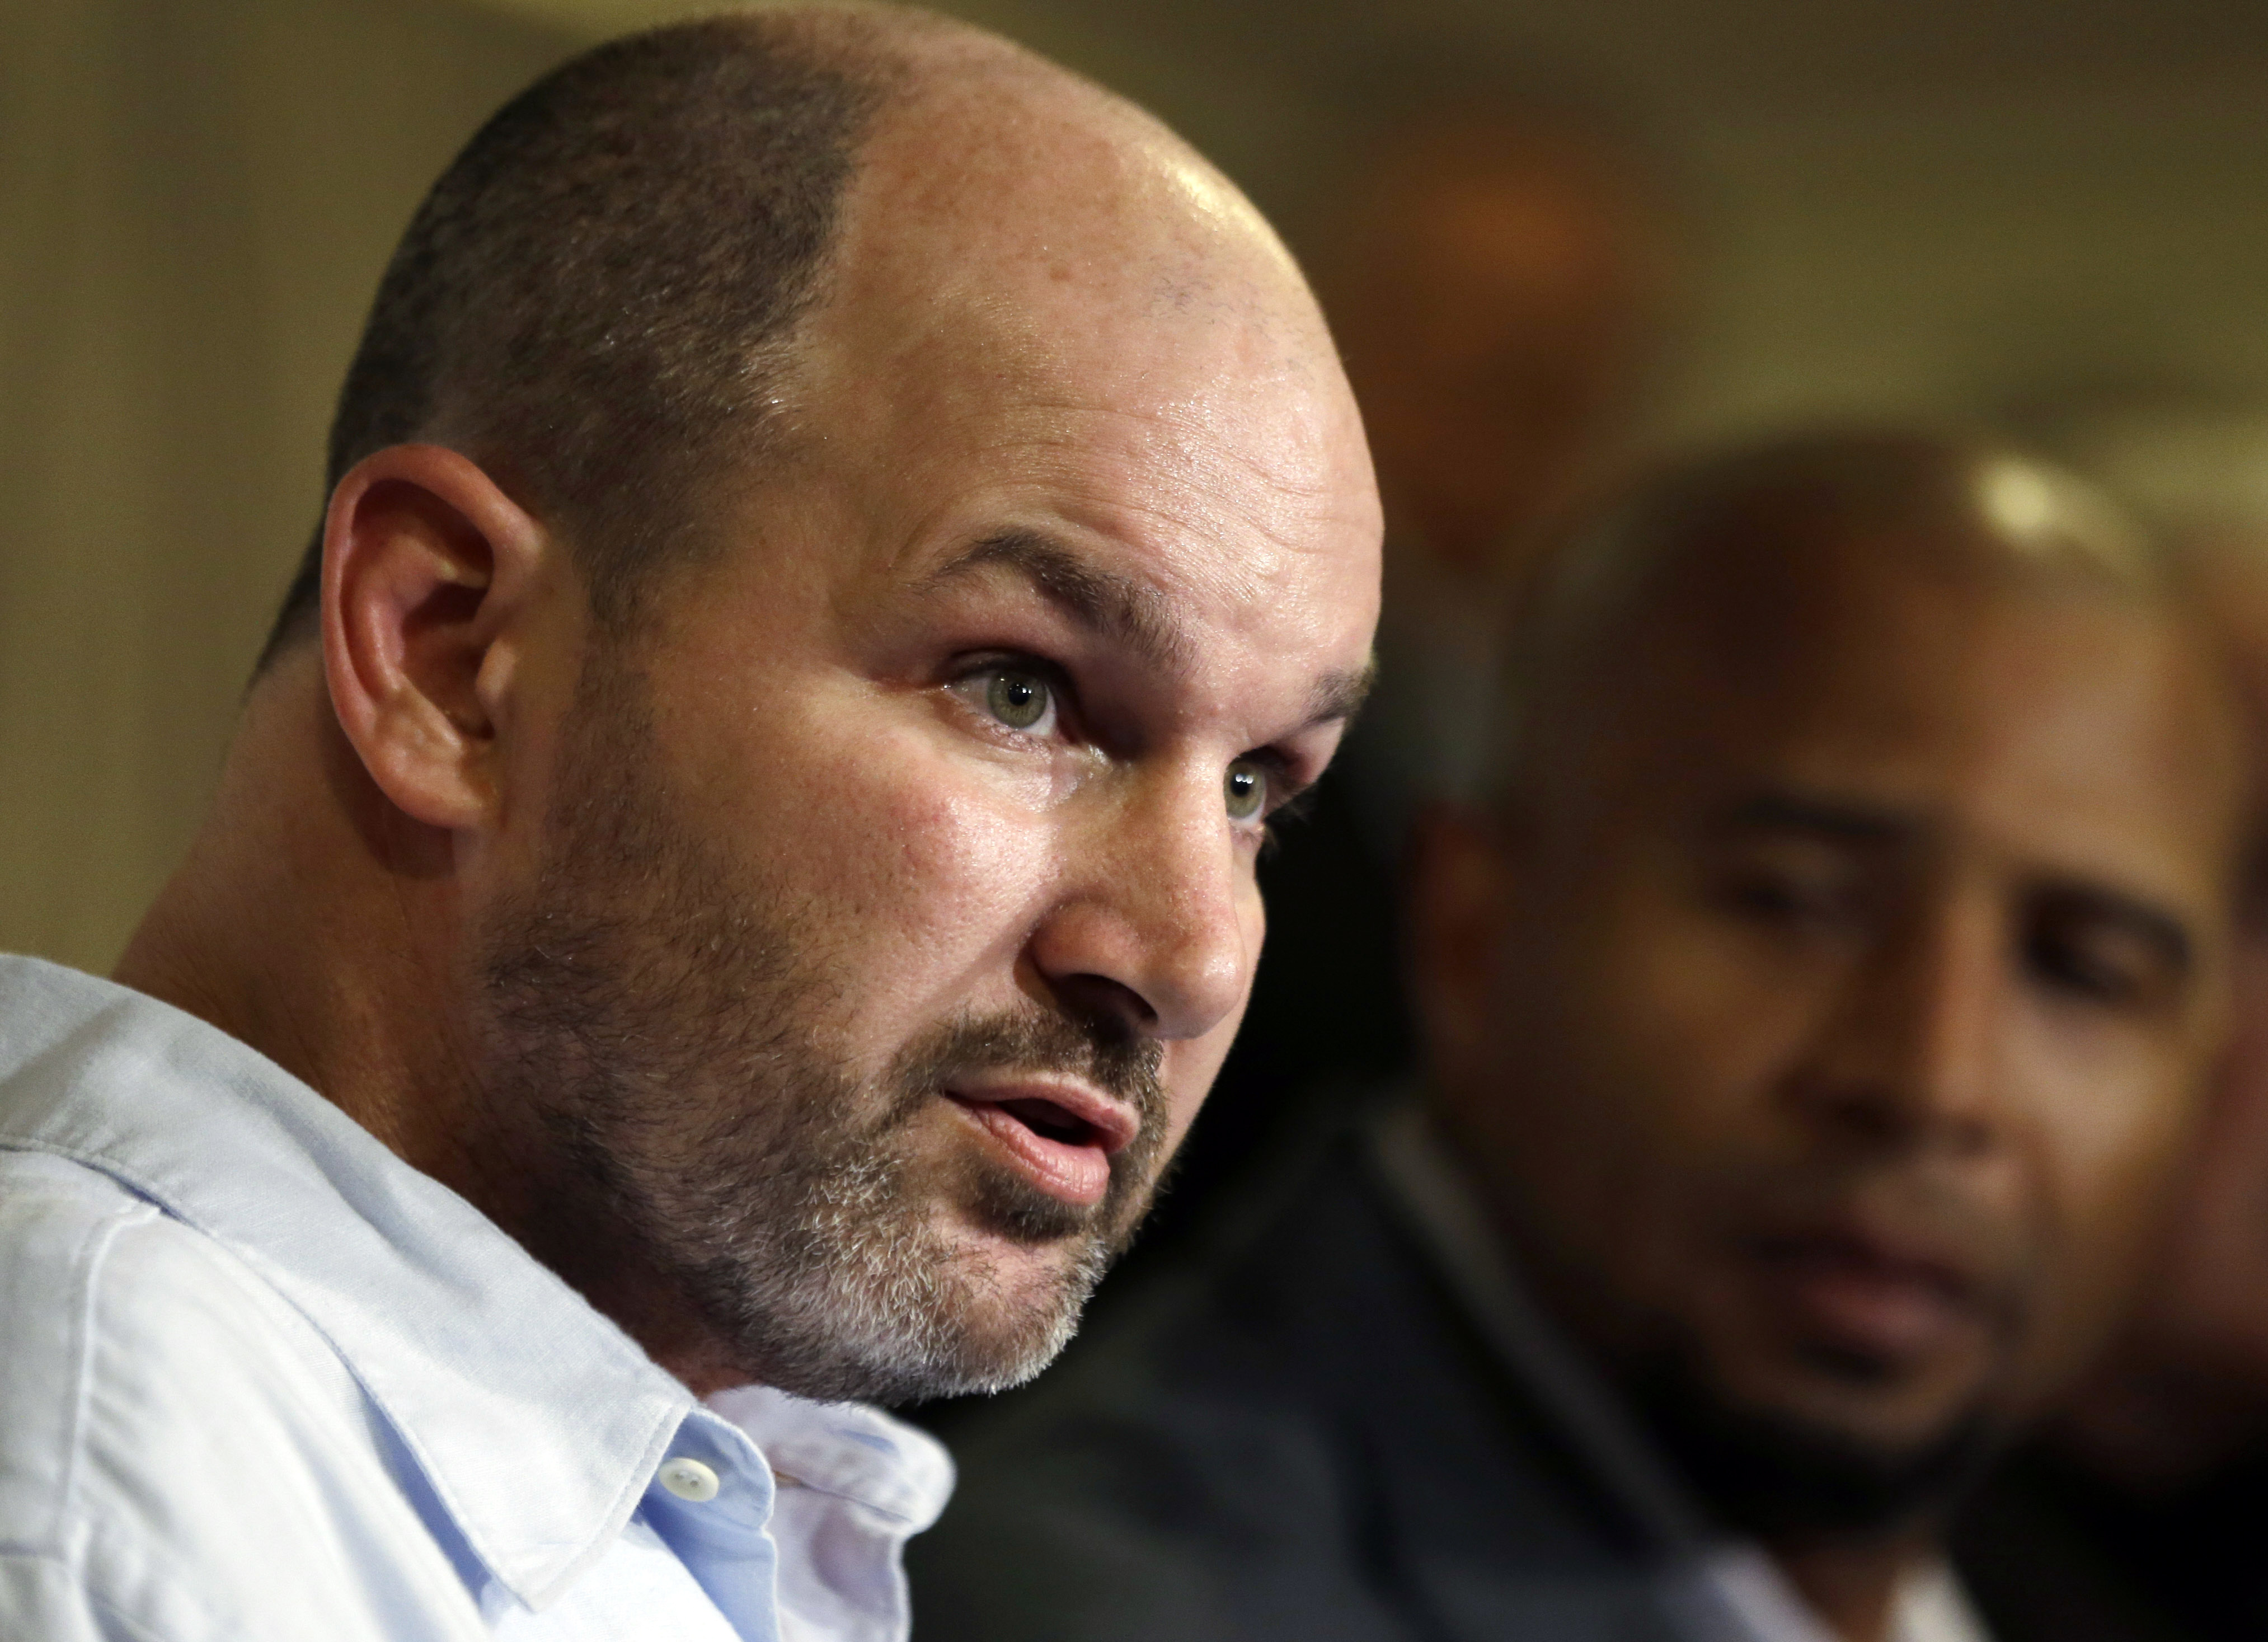 FILE - In this April 9, 2013 file photo, former NFL player Kevin Turner, left, speaks beside former player Dorsey Levens during a news conference in Philadelphia. Researchers in Boston announced Thursday, Nov. 3, 2016, that Turner, who died in March from